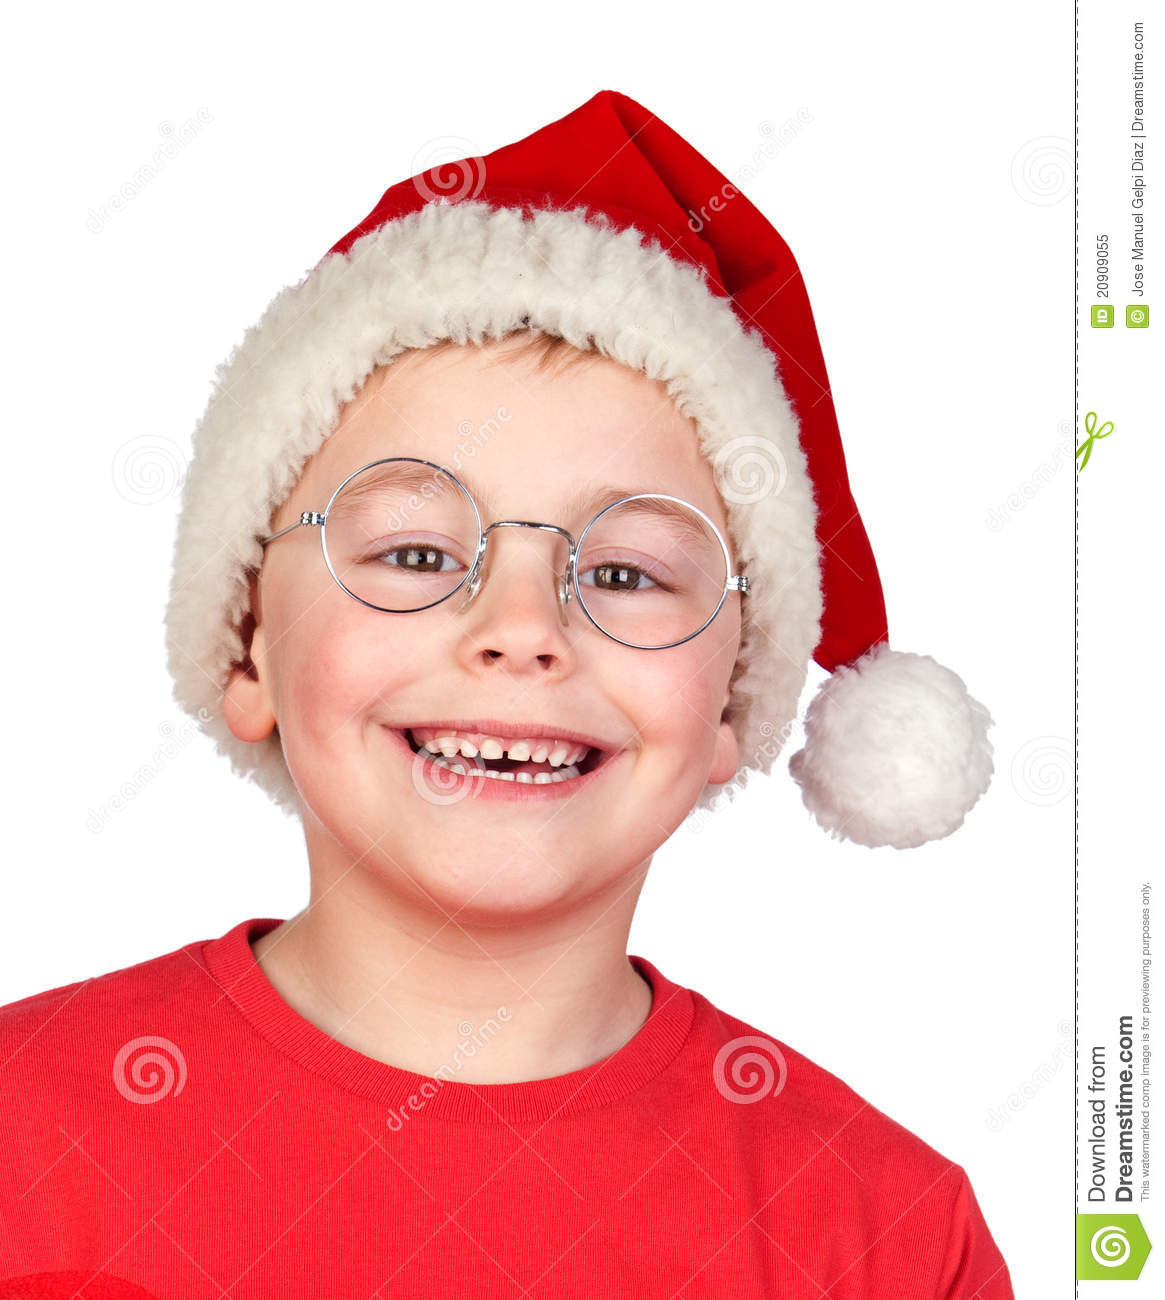 Adorable Child With Santa Hat And Glasses Royalty Free